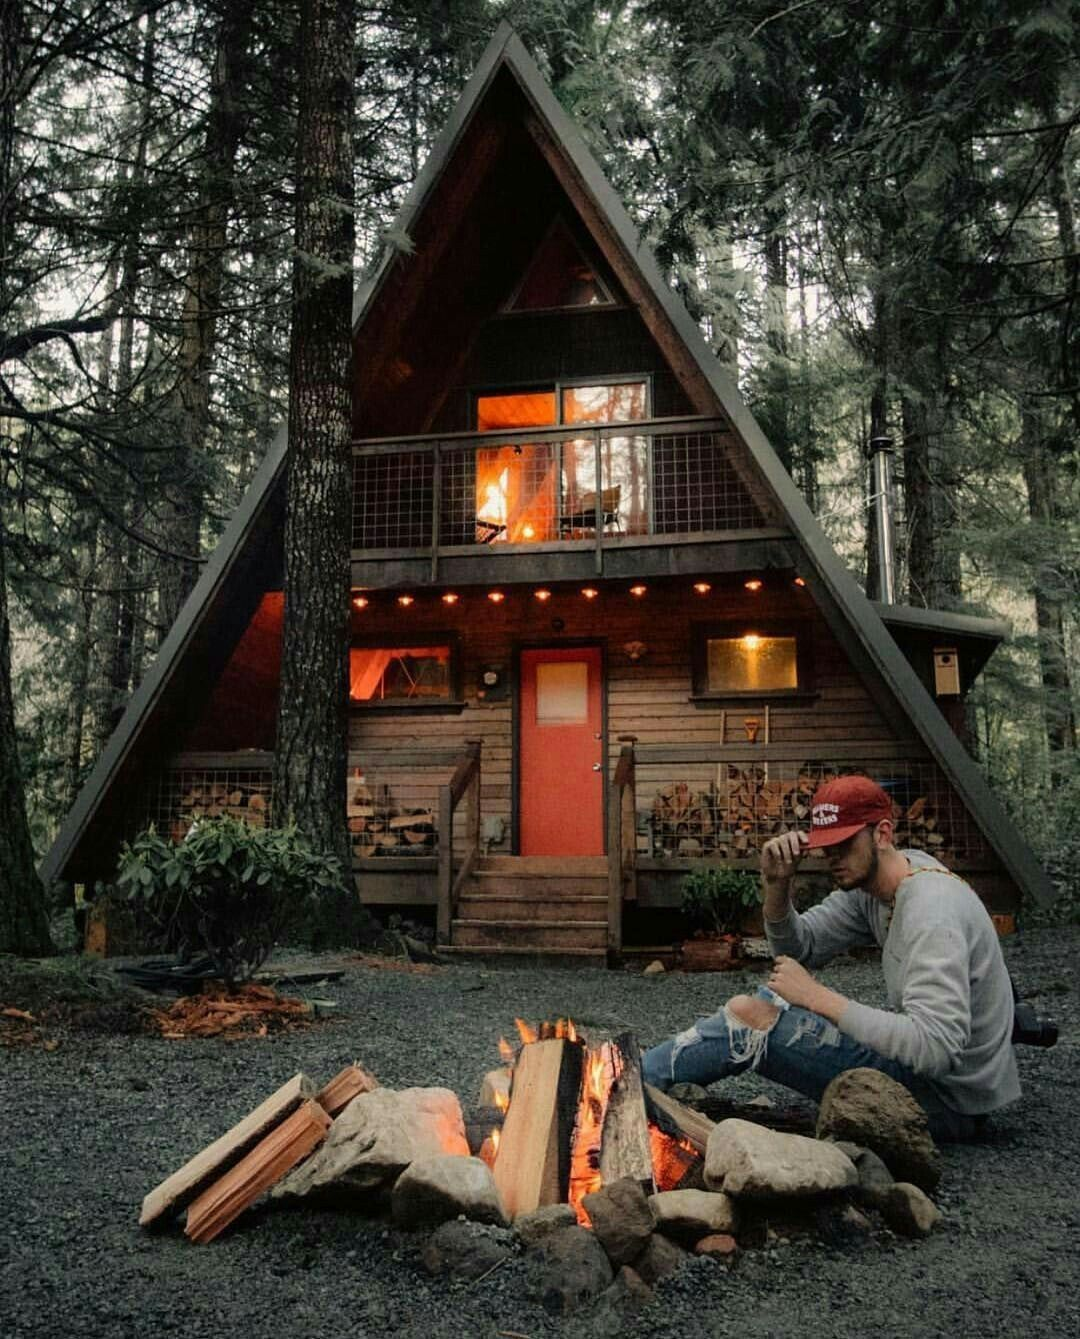 Tiny Home Designs: A Frame Cabin In The Woods // Fire Pit // Cottage Country